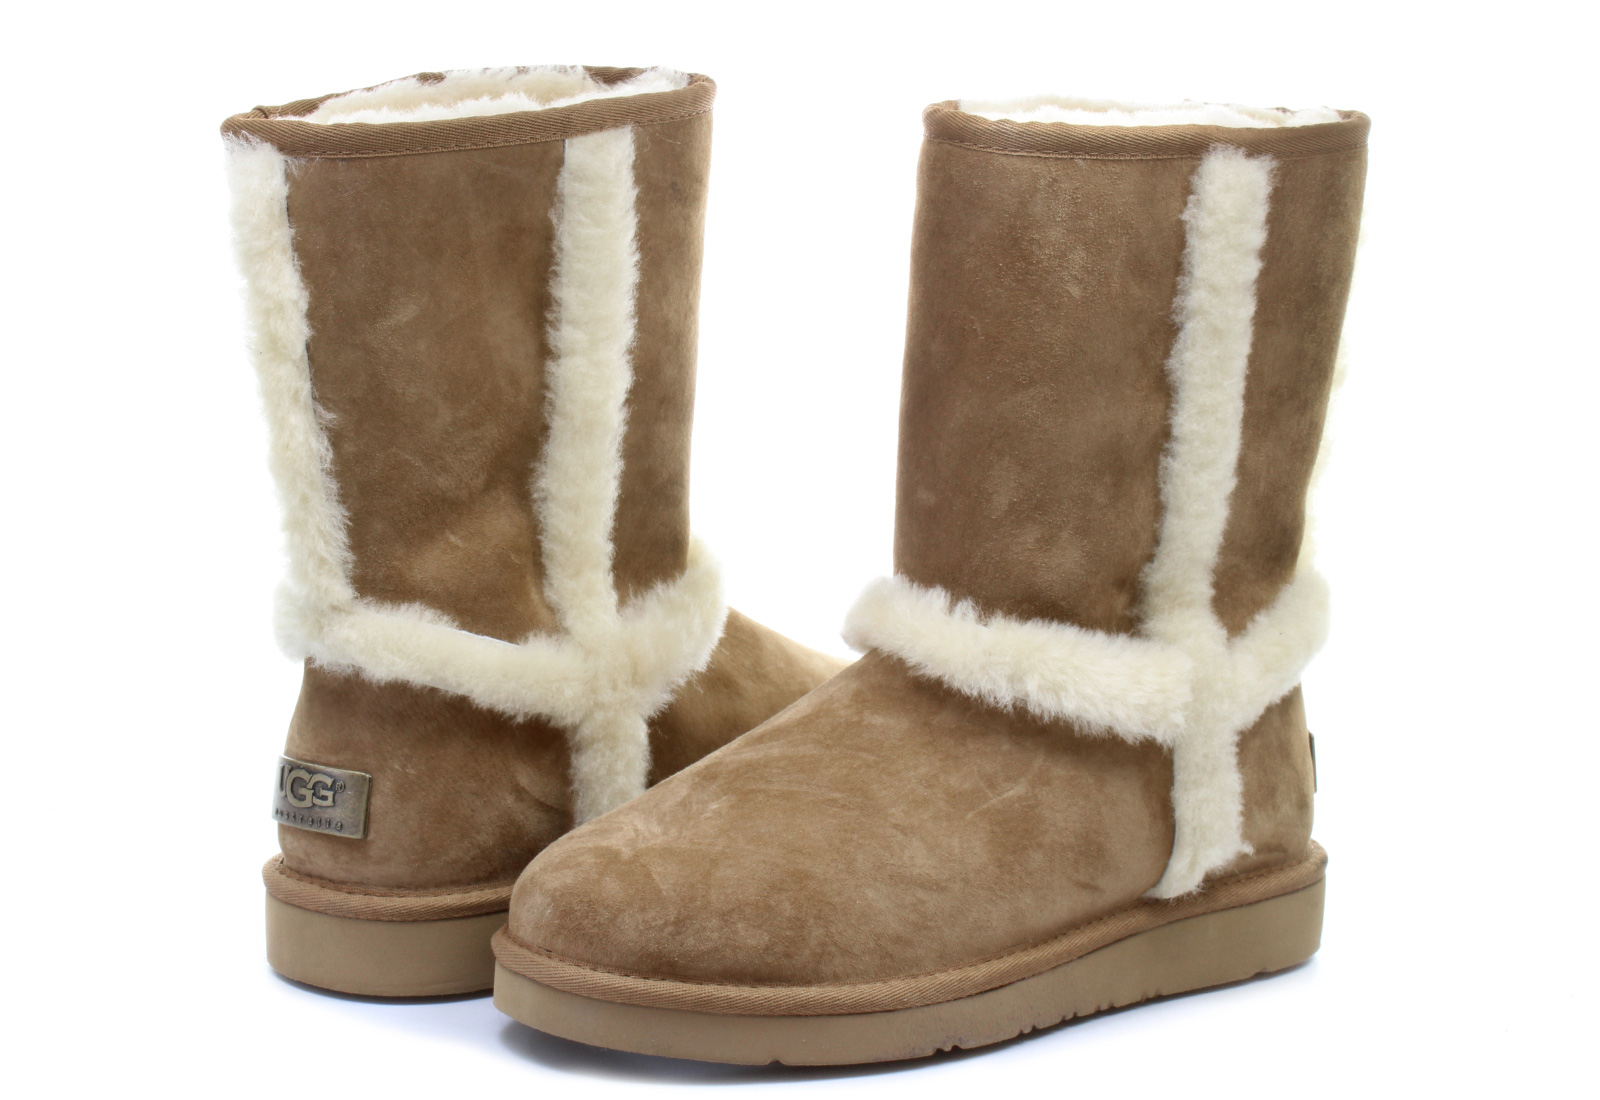 "Deckers bought UGG Australia in , and long before its global brand campaign (""This is UGG"") to educate consumers, started trademarking the UGG name and brand in the US and more than."